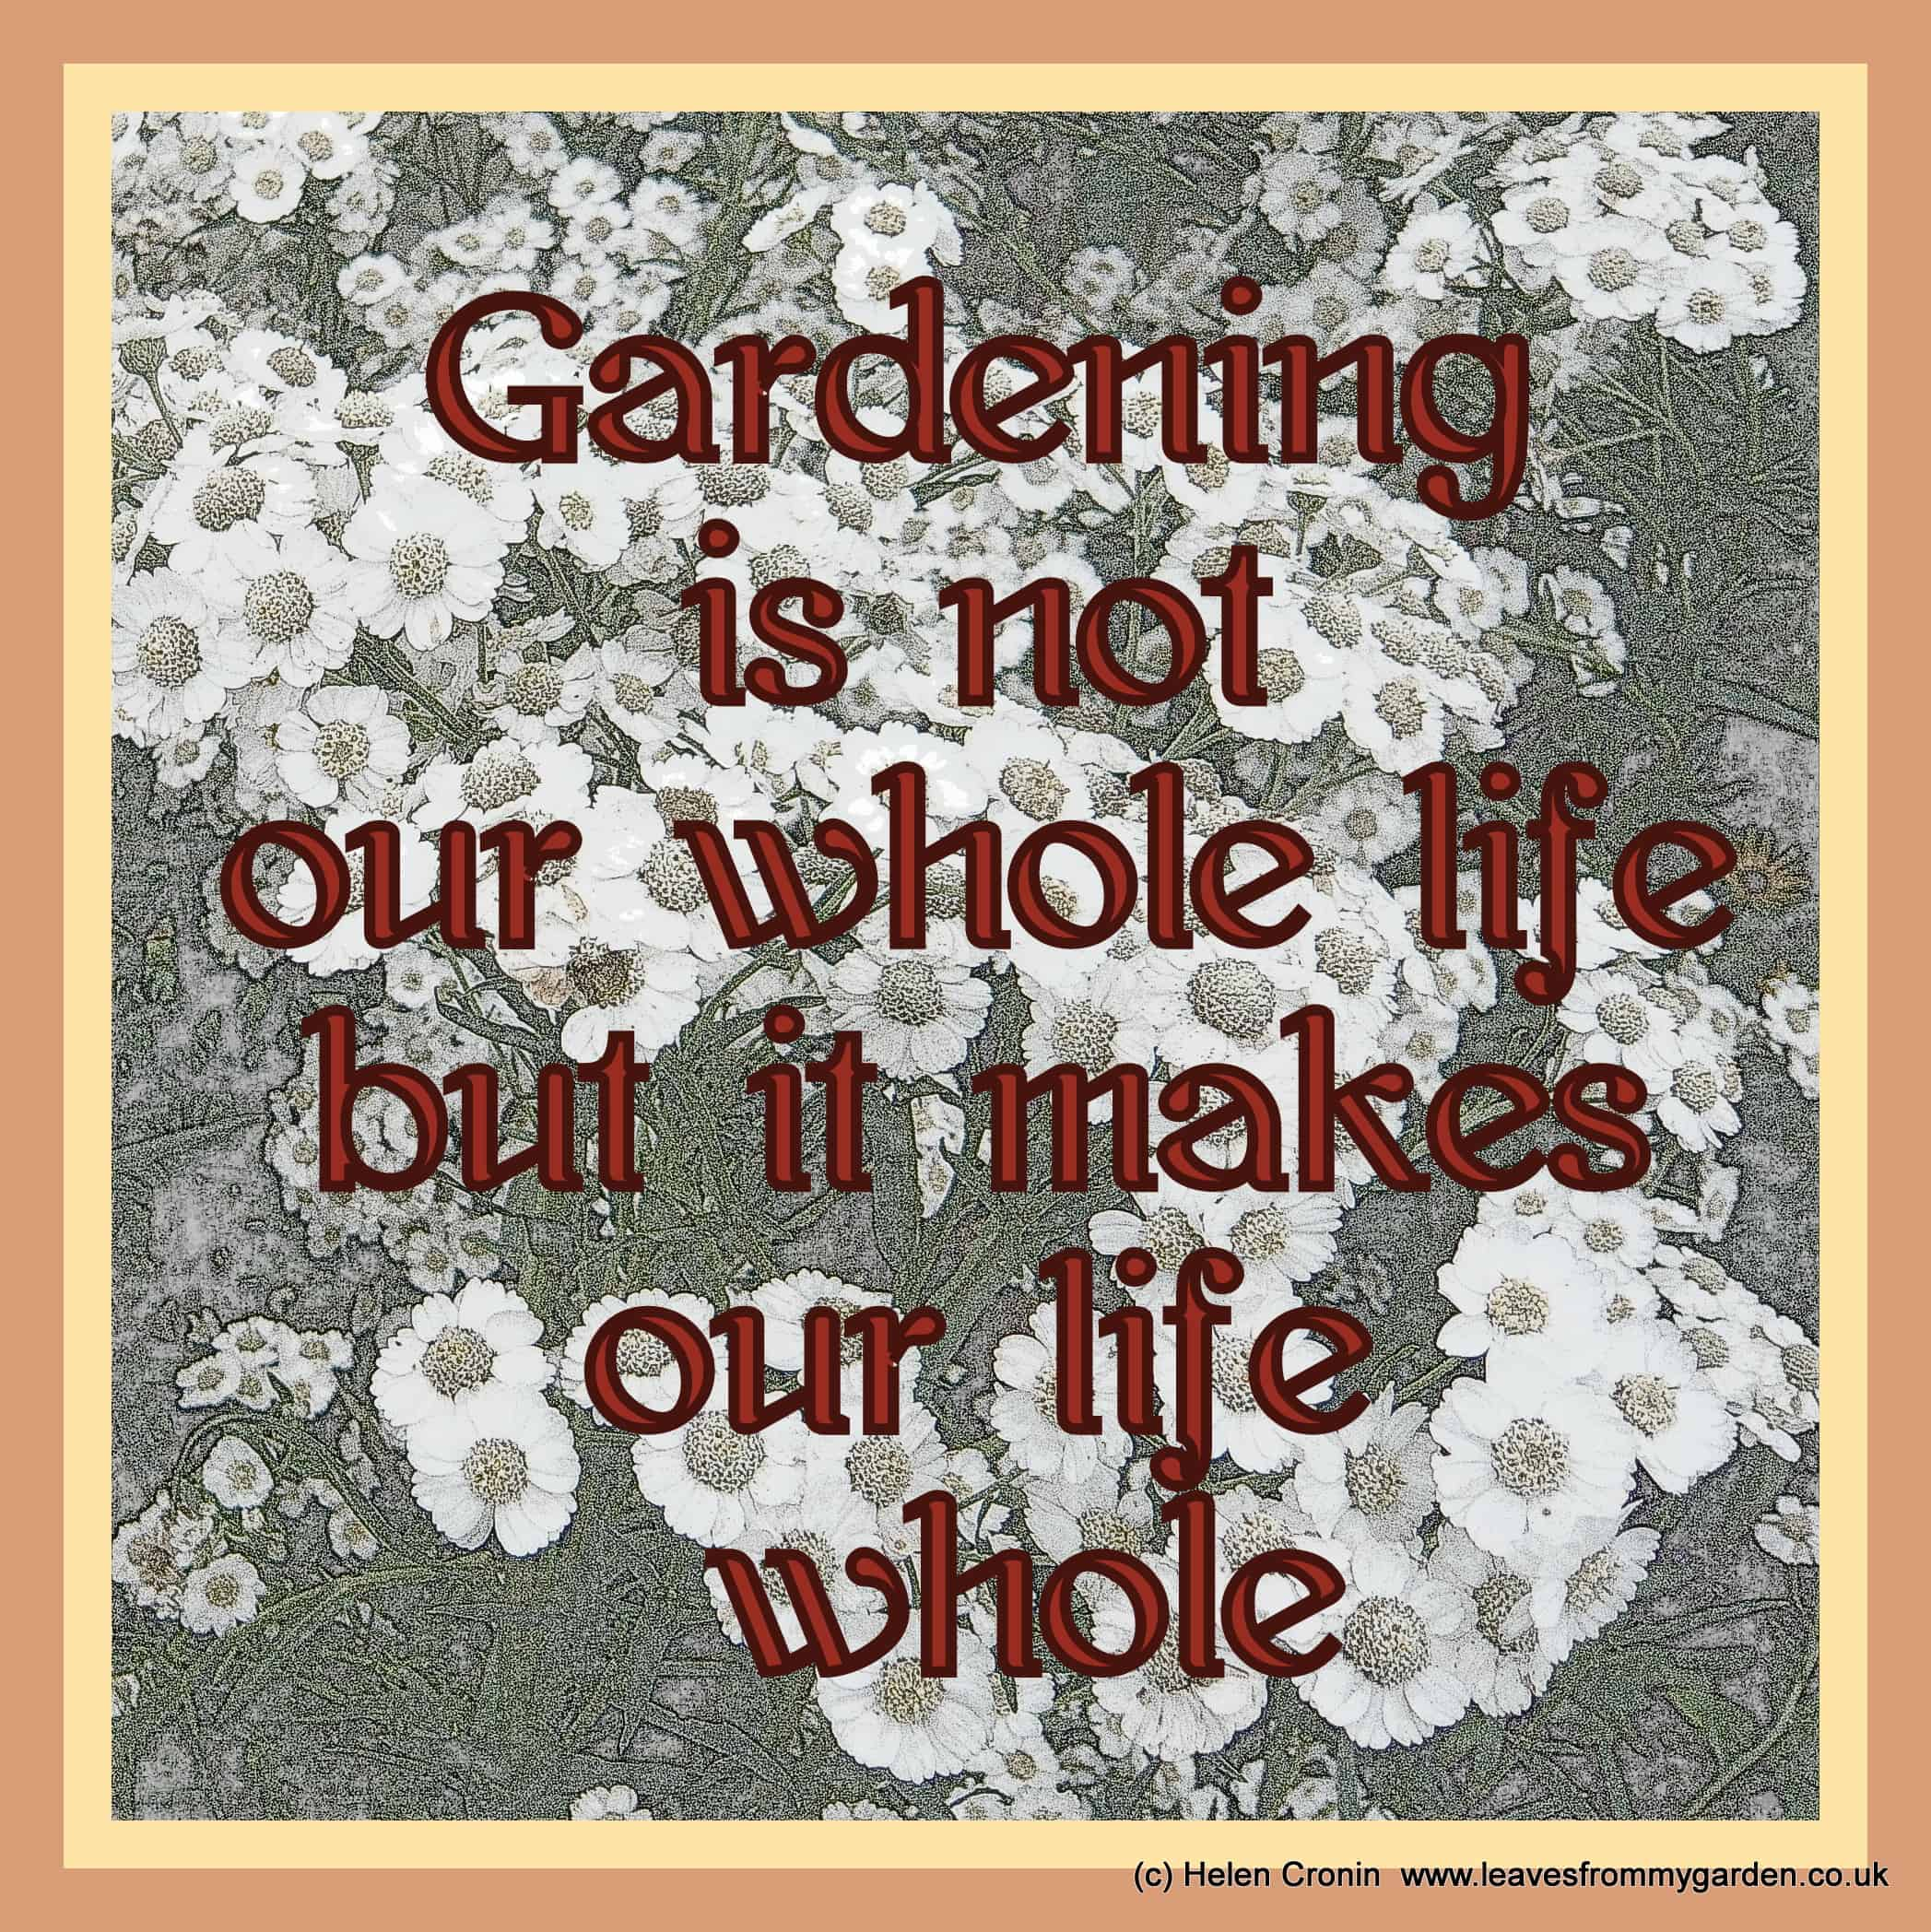 Inspirational Garden Quotation, Gardening is not our whole life but it makes our life whole